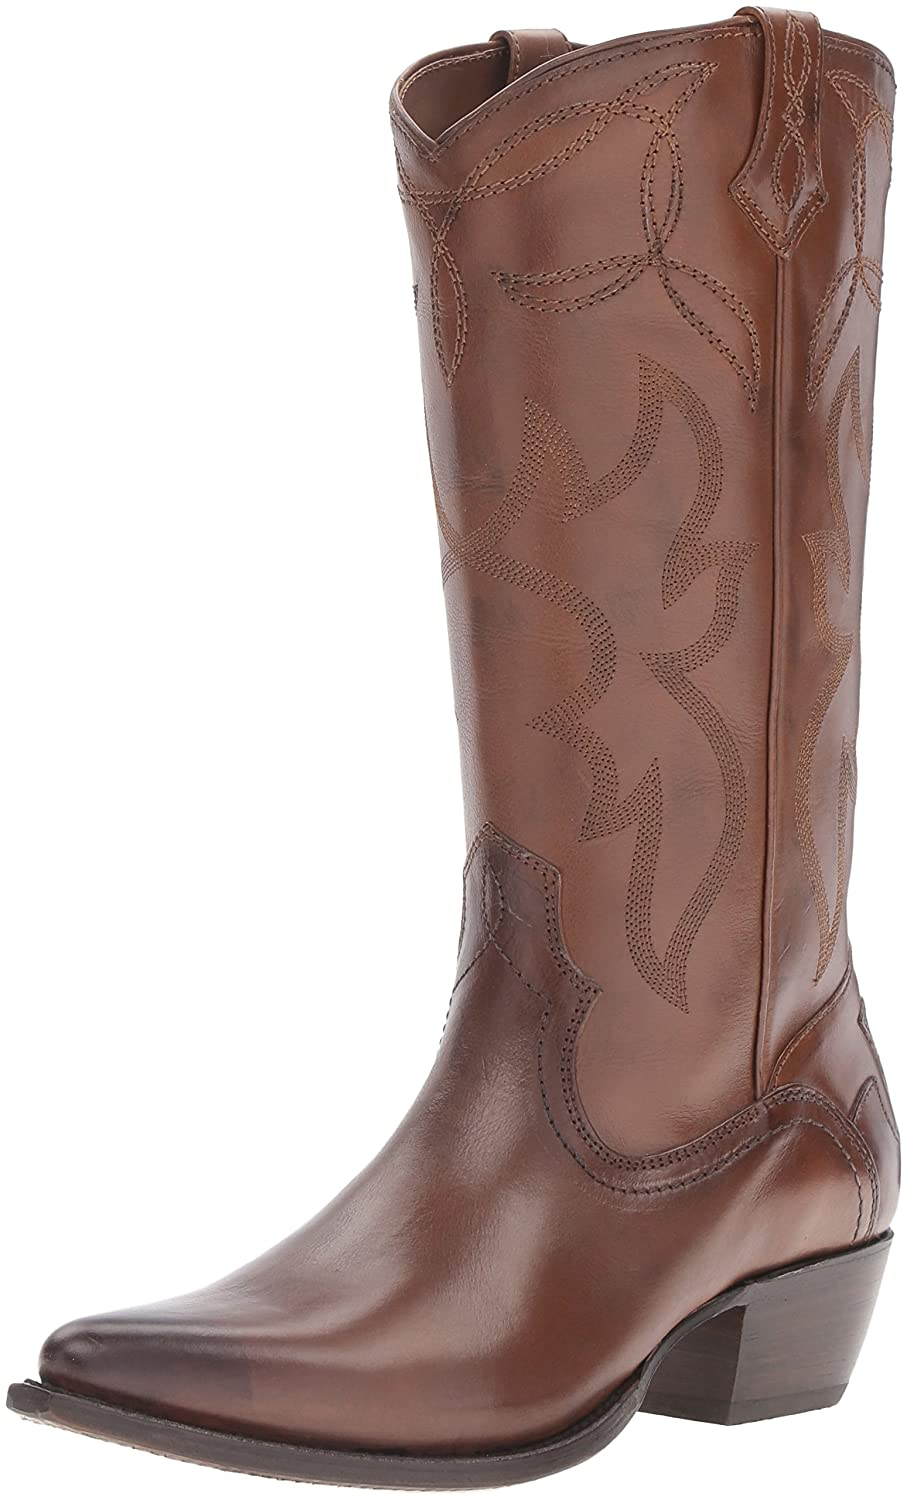 FRYE Women's Shane Embroidered Tall Western Boot B01BMRWU84 6 B(M) US|Whiskey